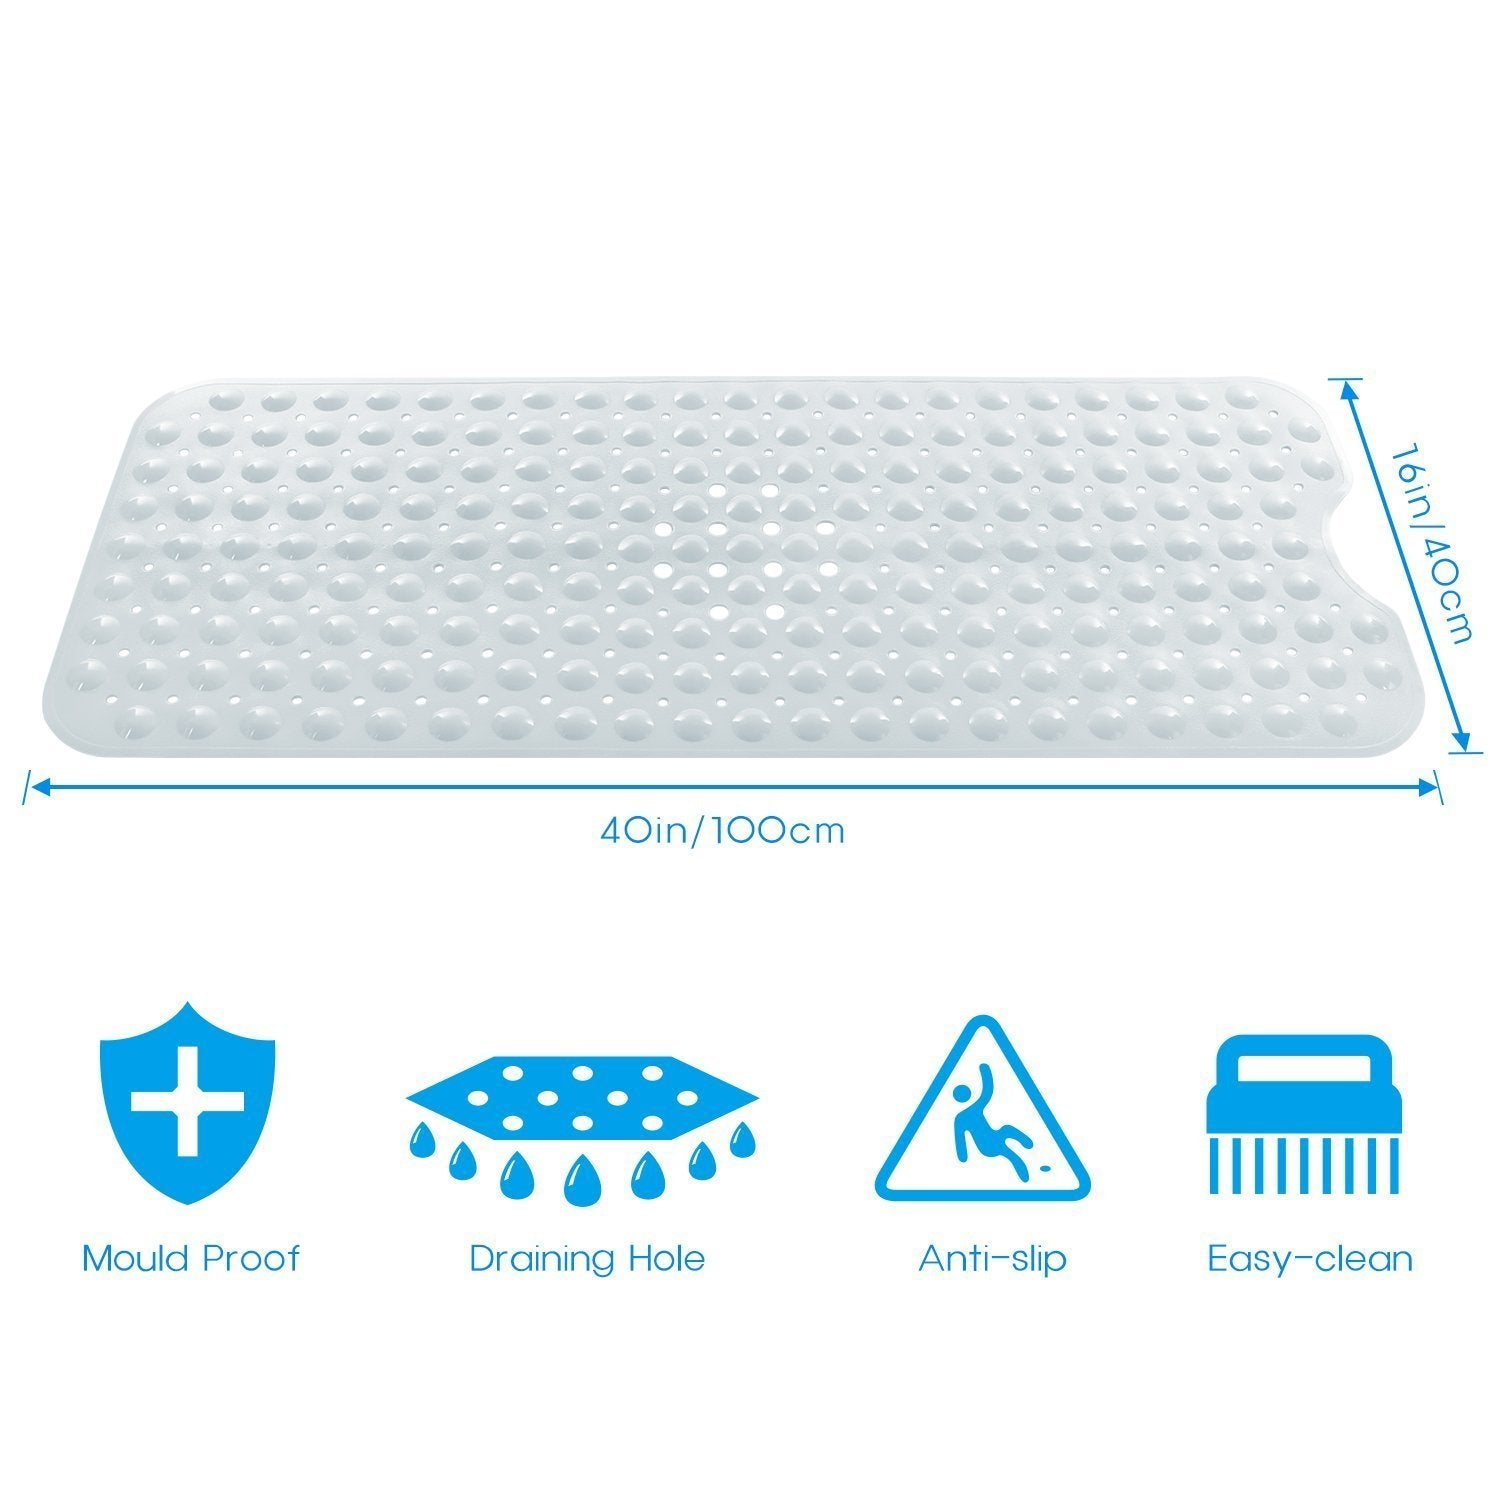 pillow deluxe click to with bathtub expand foam white p x spa mat